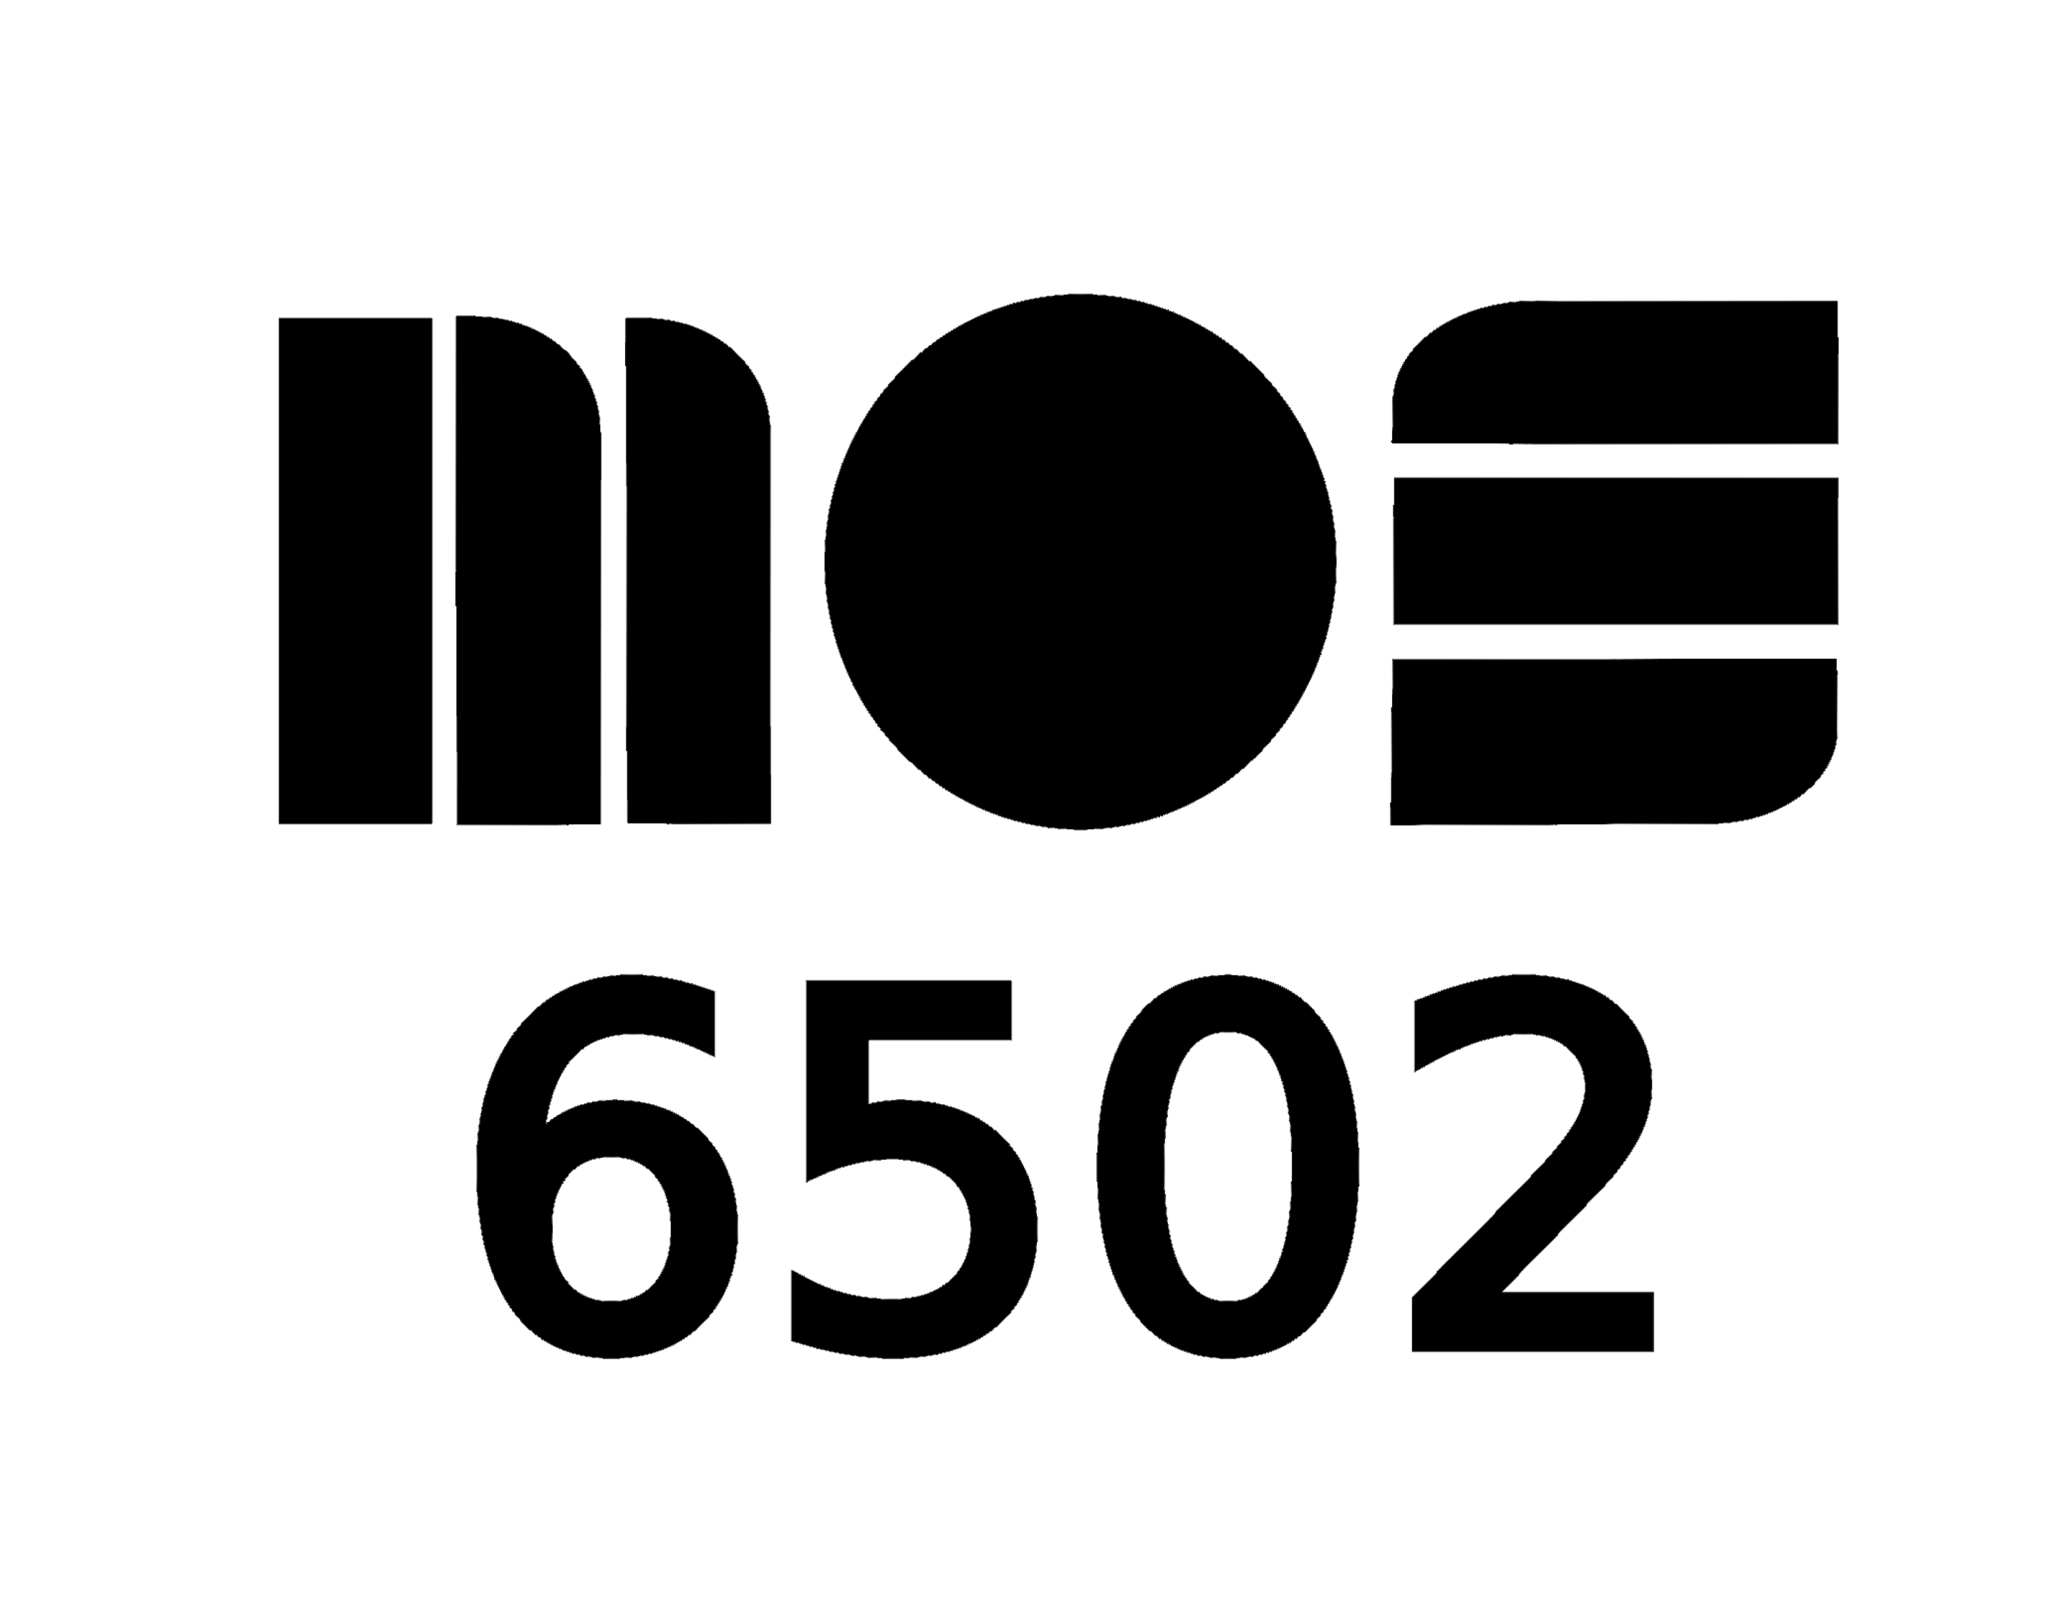 MOS 6502 tee shirt design example